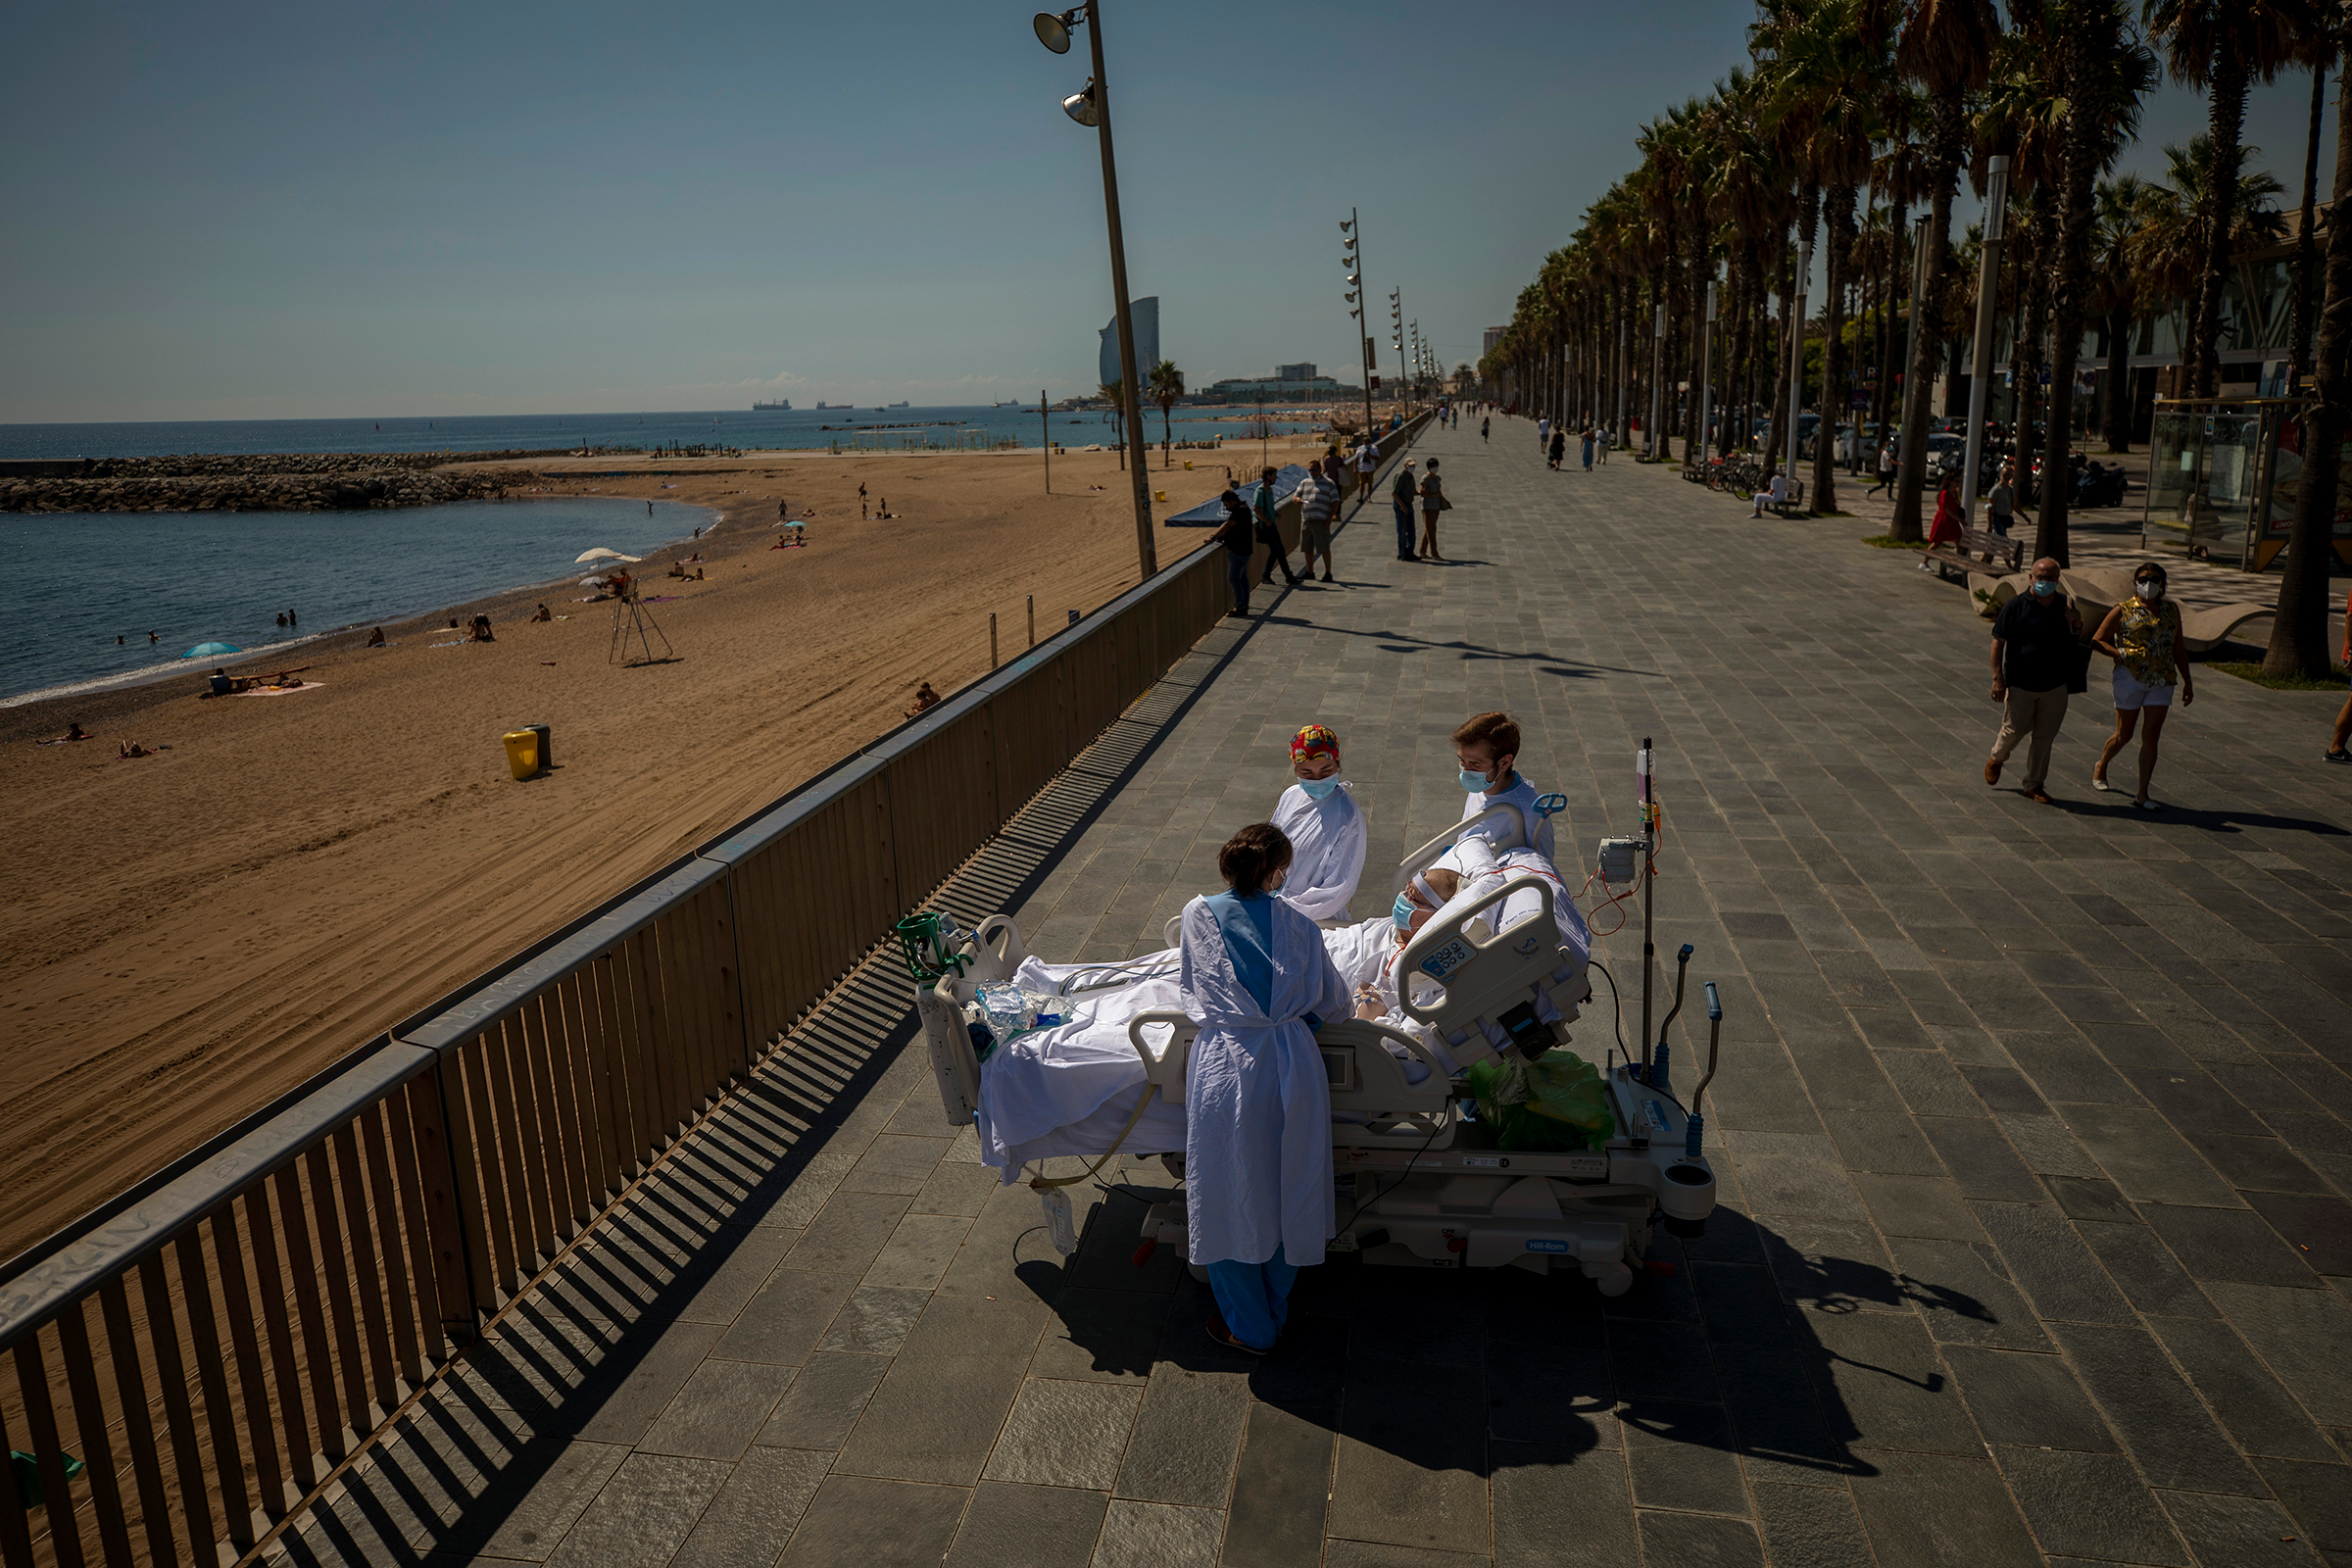 Francisco Espana, 60, is surrounded by members of his medical team on a promenade next to the Hospital del Mar in Barcelona on Sept. 4.